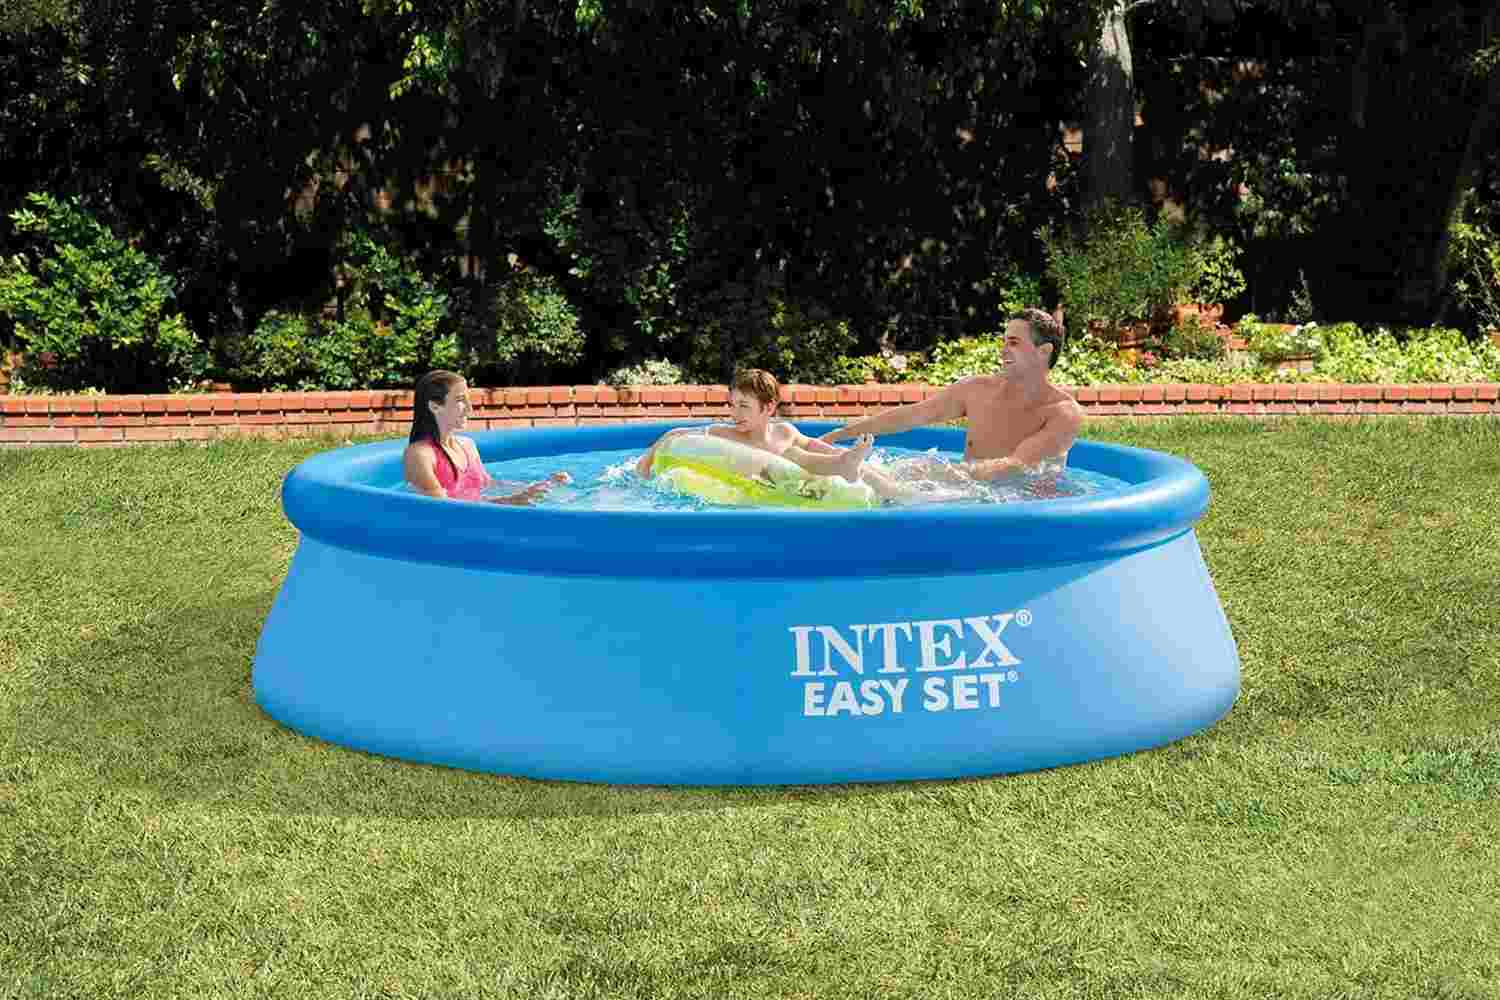 Intex Pools - Accessories | Sears.com